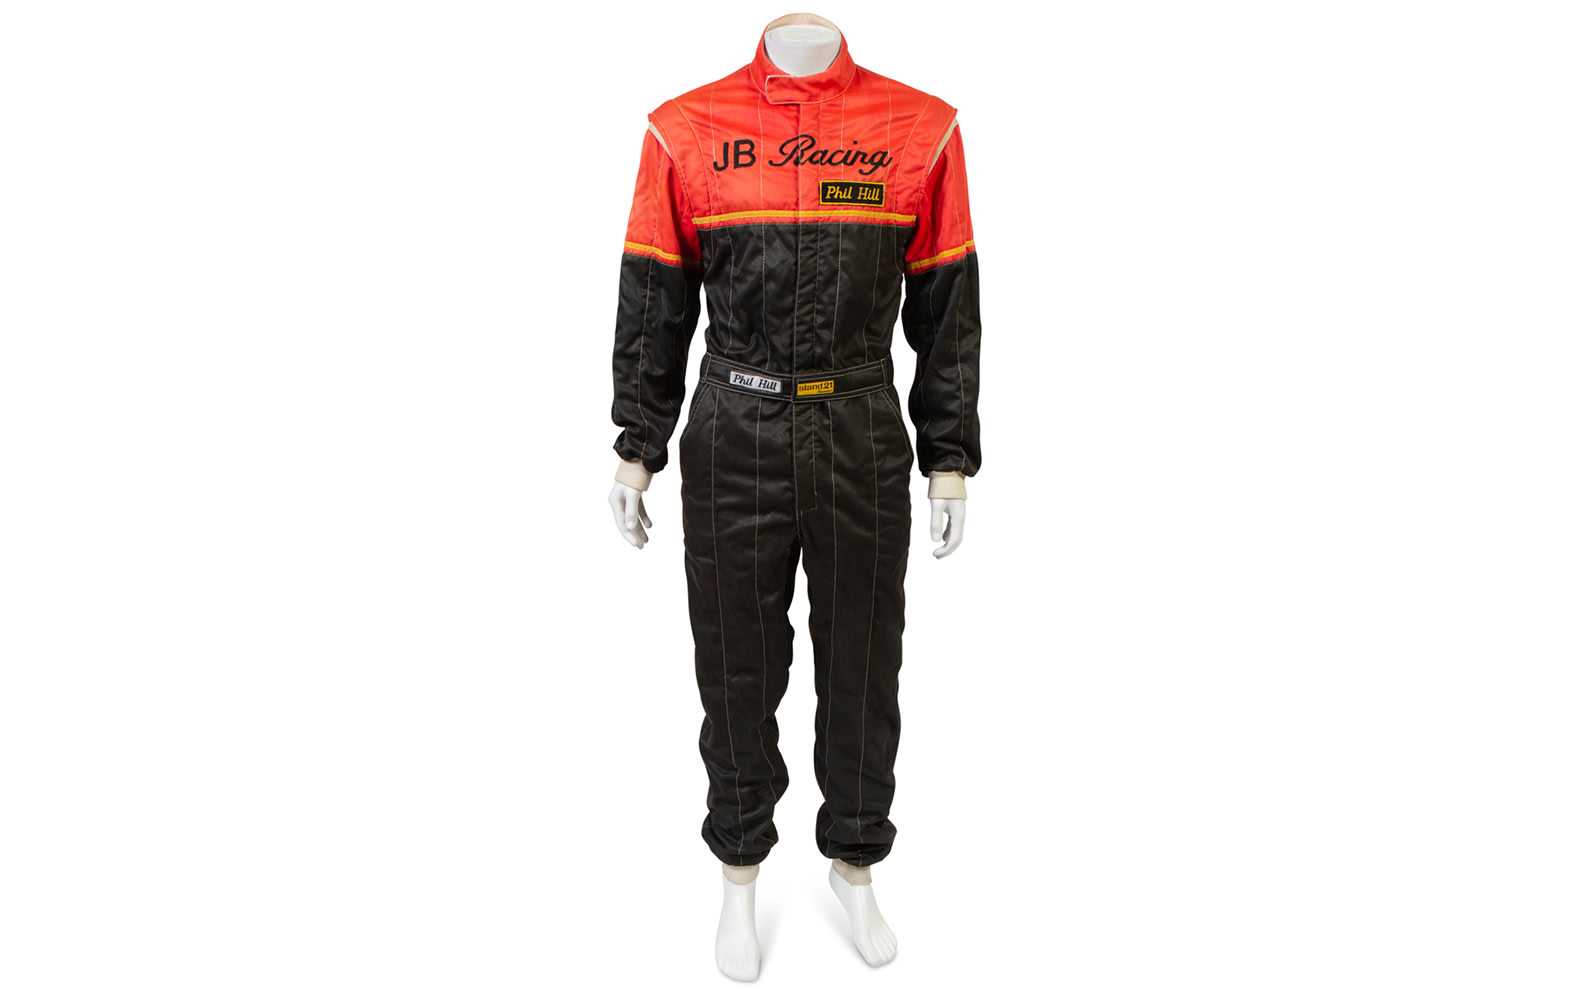 Prod/O21C - Phil Hill B 2021/B0269_Stand 21 Nomex Racing Suit/B0269_Stand_21_Nomex_Racing_Suit_8_cki46v